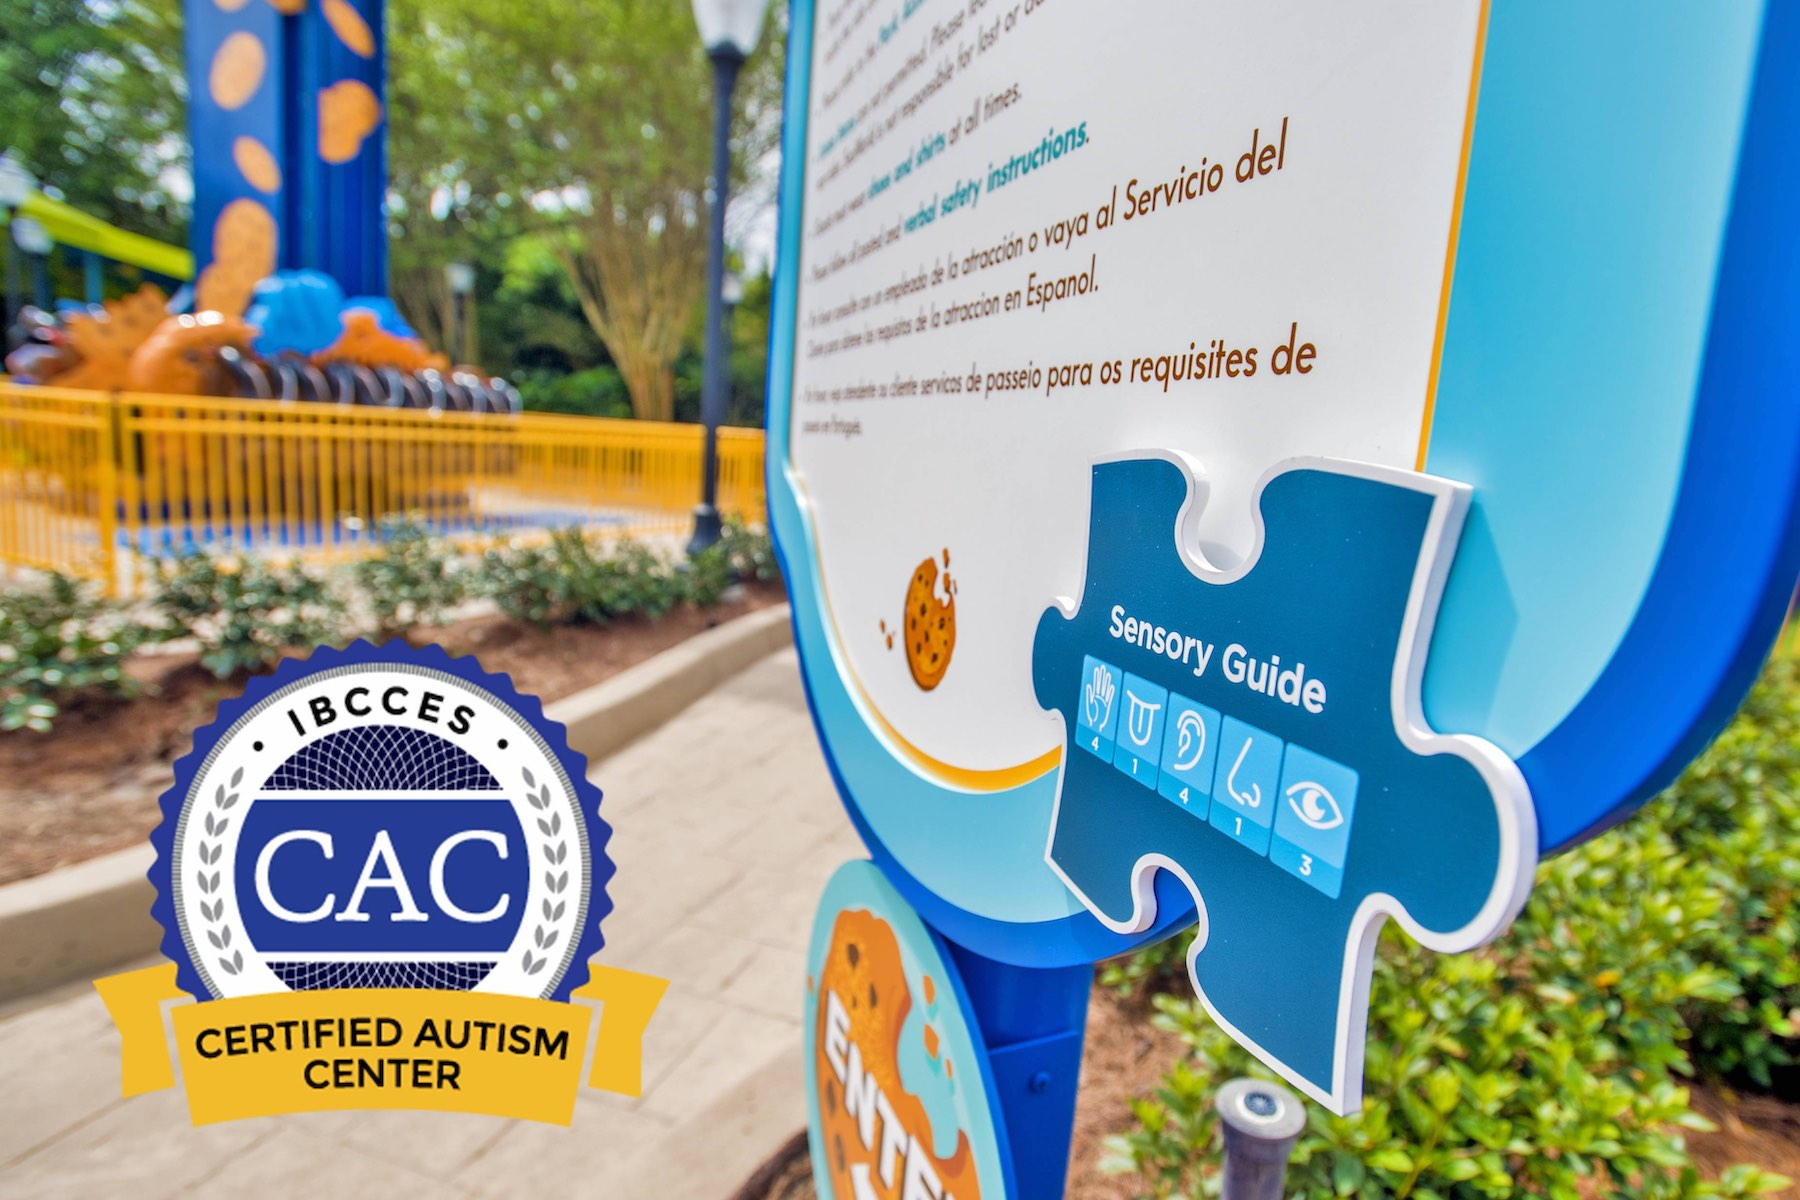 SEAWORLD ORLANDO IS NOW A CERTIFIED AUTISM CENTER!